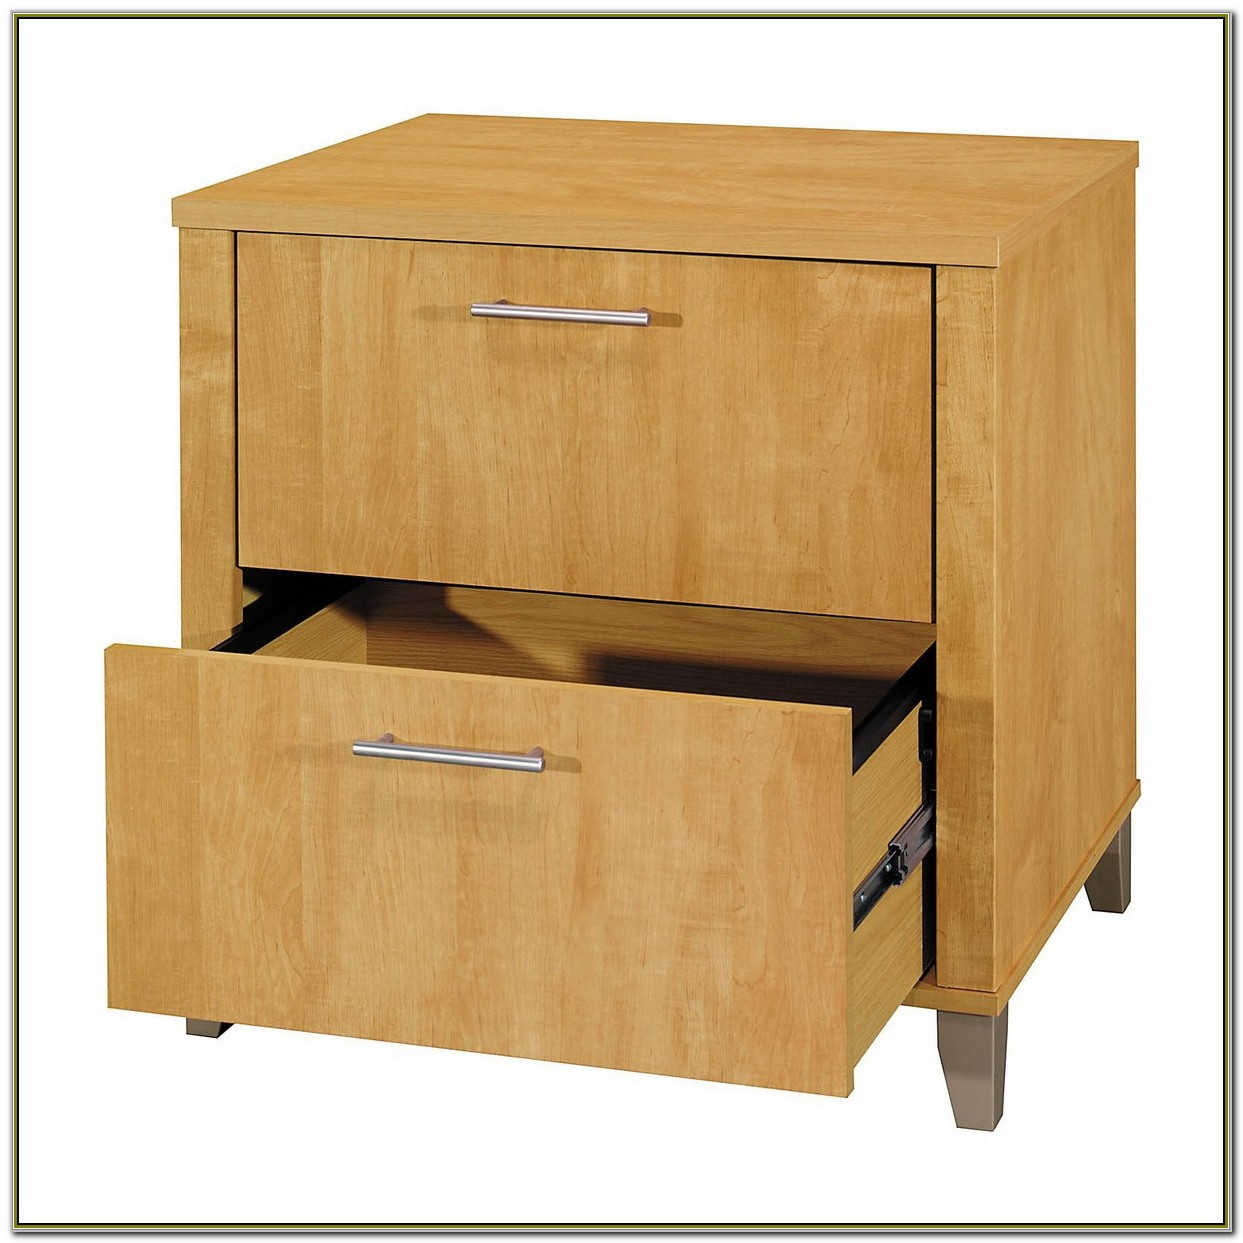 Wood 2 Drawer File Cabinet On Wheels